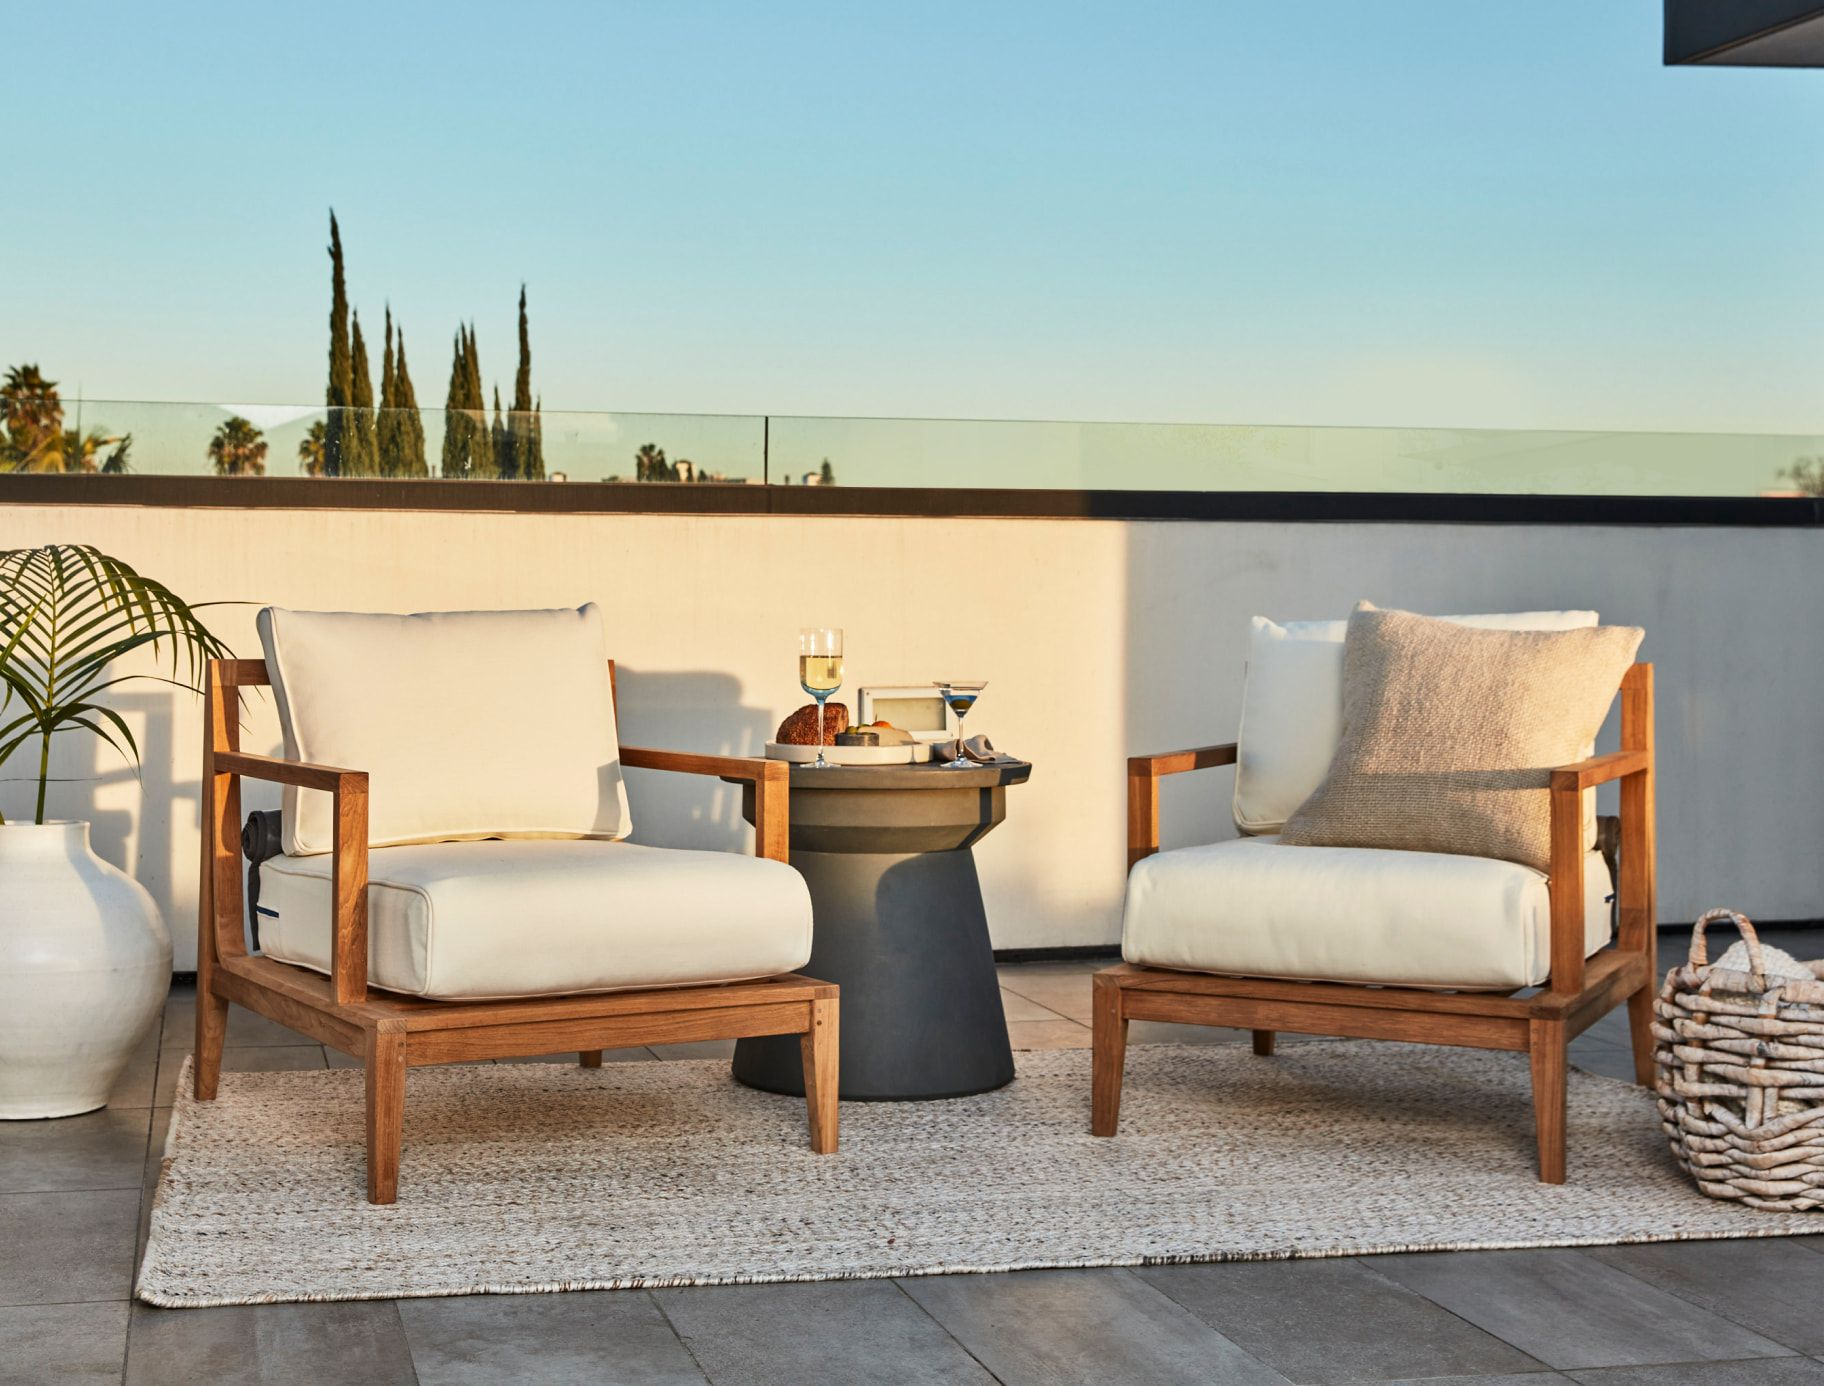 Teak is one of the best wood for outdoor furniture